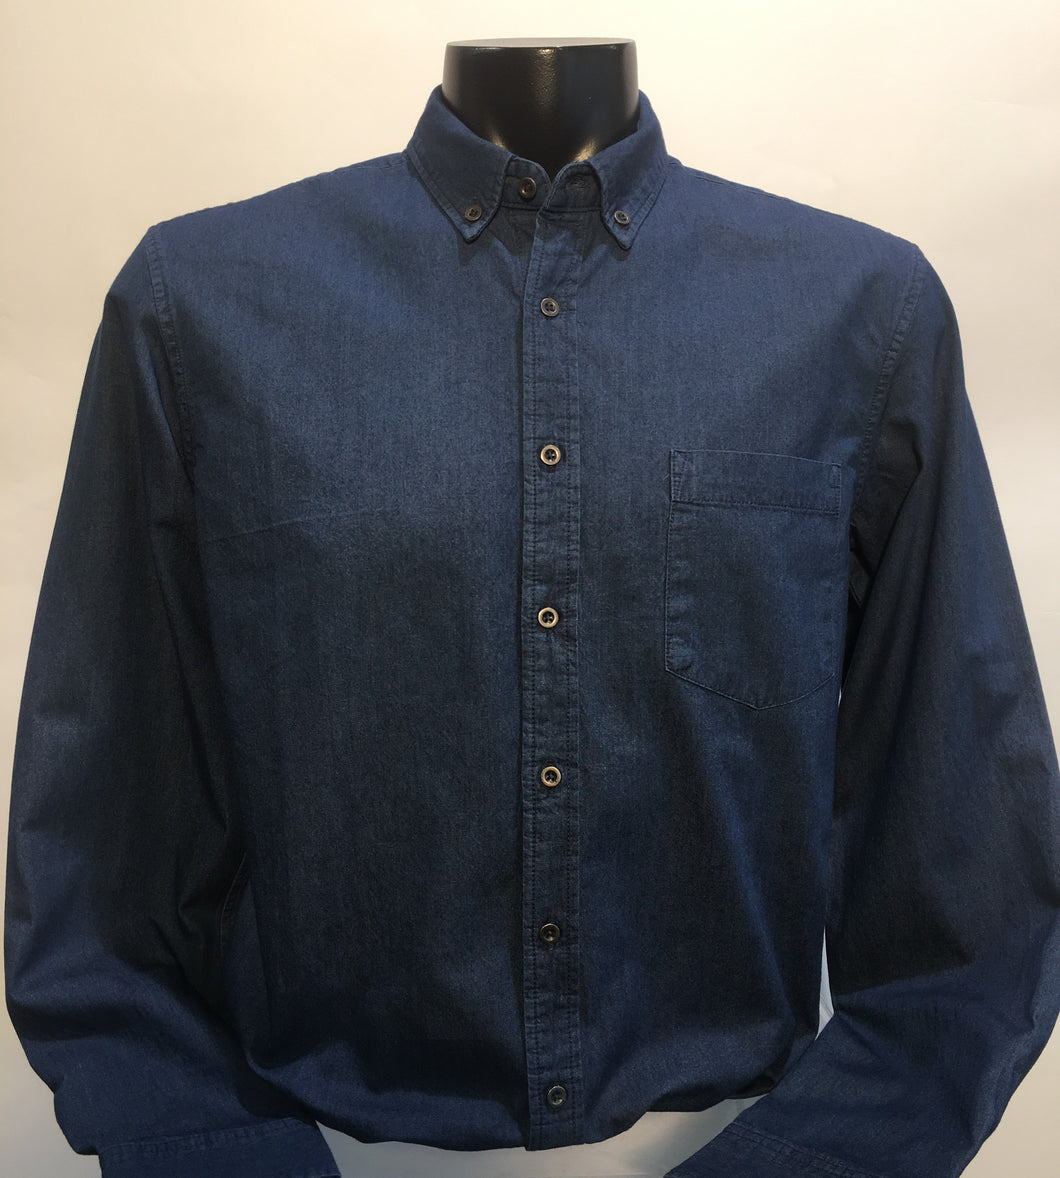 Biz Collection denim shirt